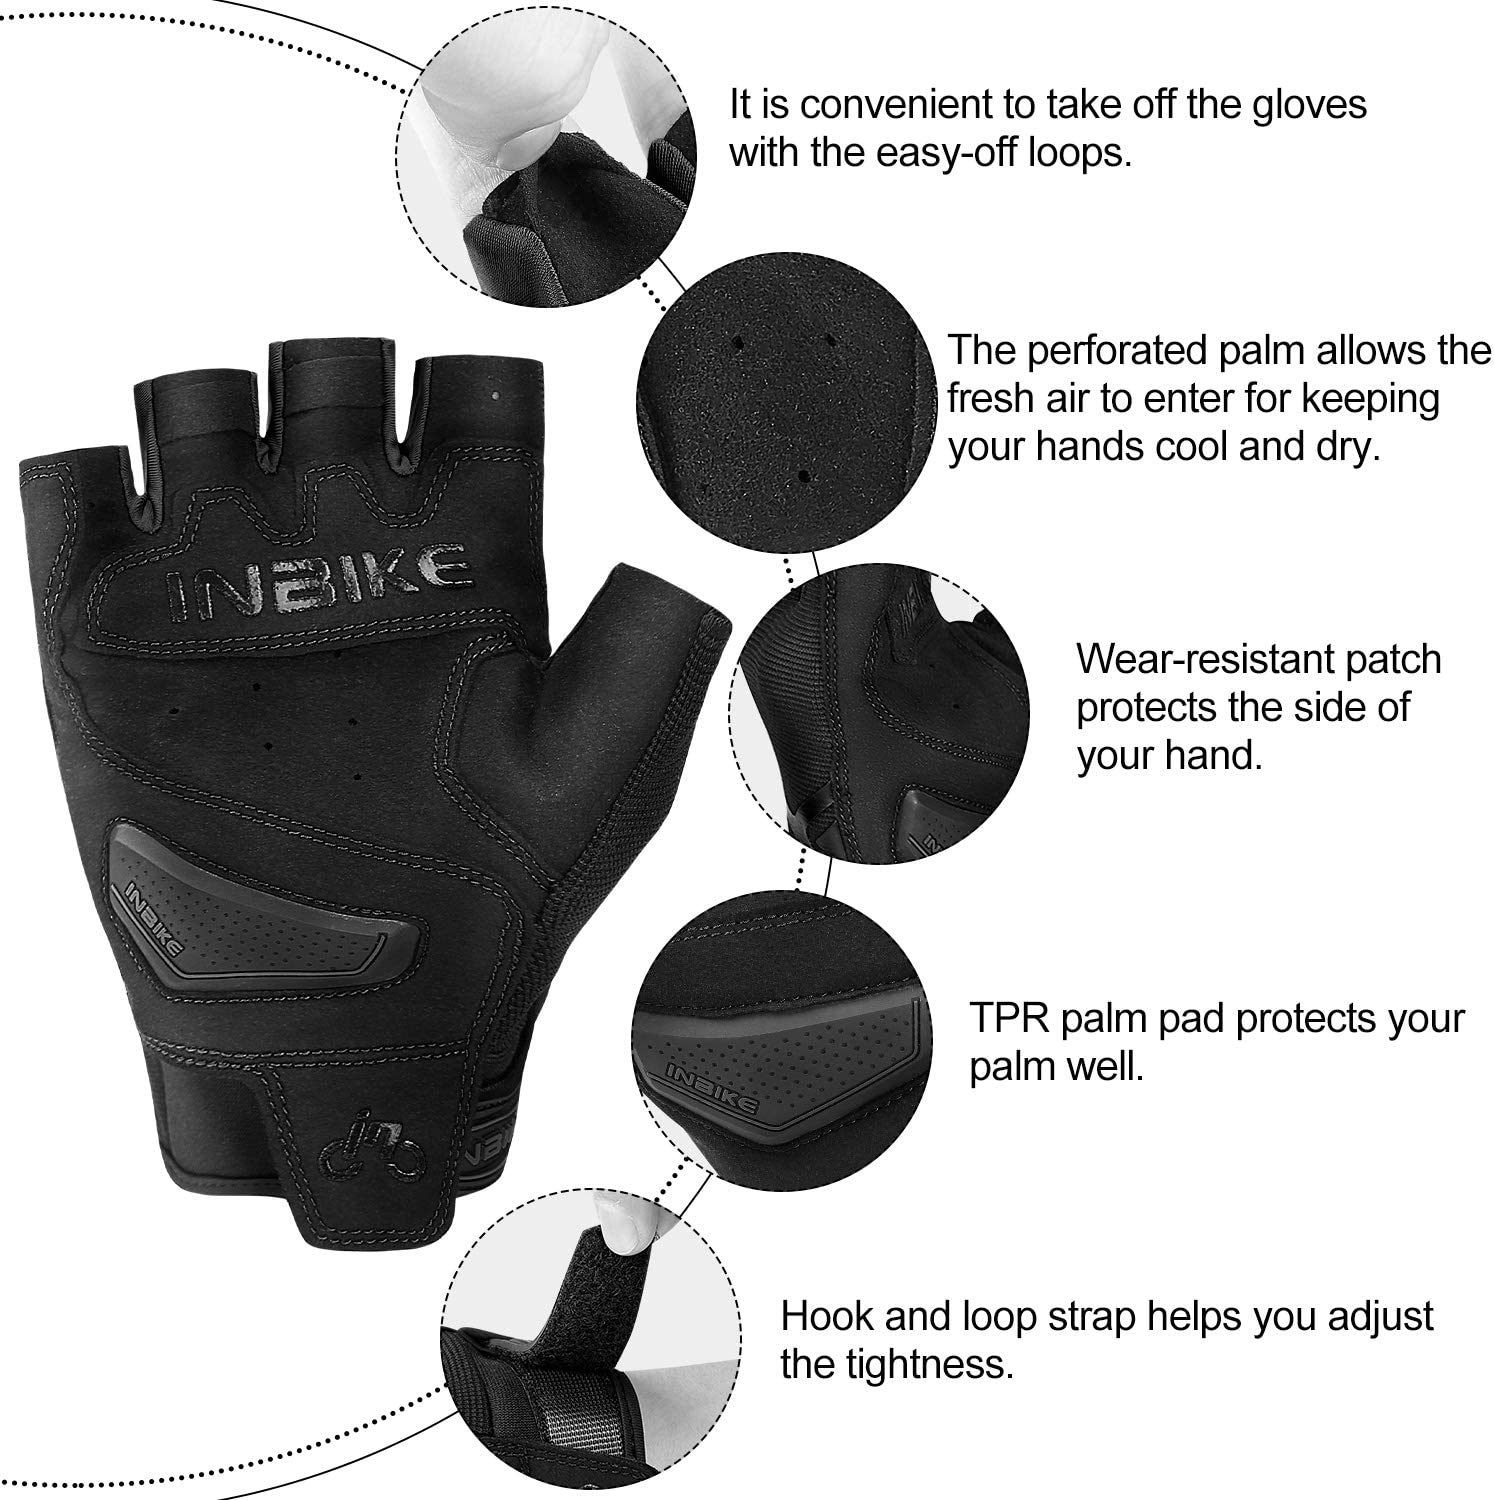 INBIKE Breathable Mesh Half Finger Motorcycle Gloves Hard Knuckle Wear Resistant with TPR Padded Palm Cushioning Black Red Medium